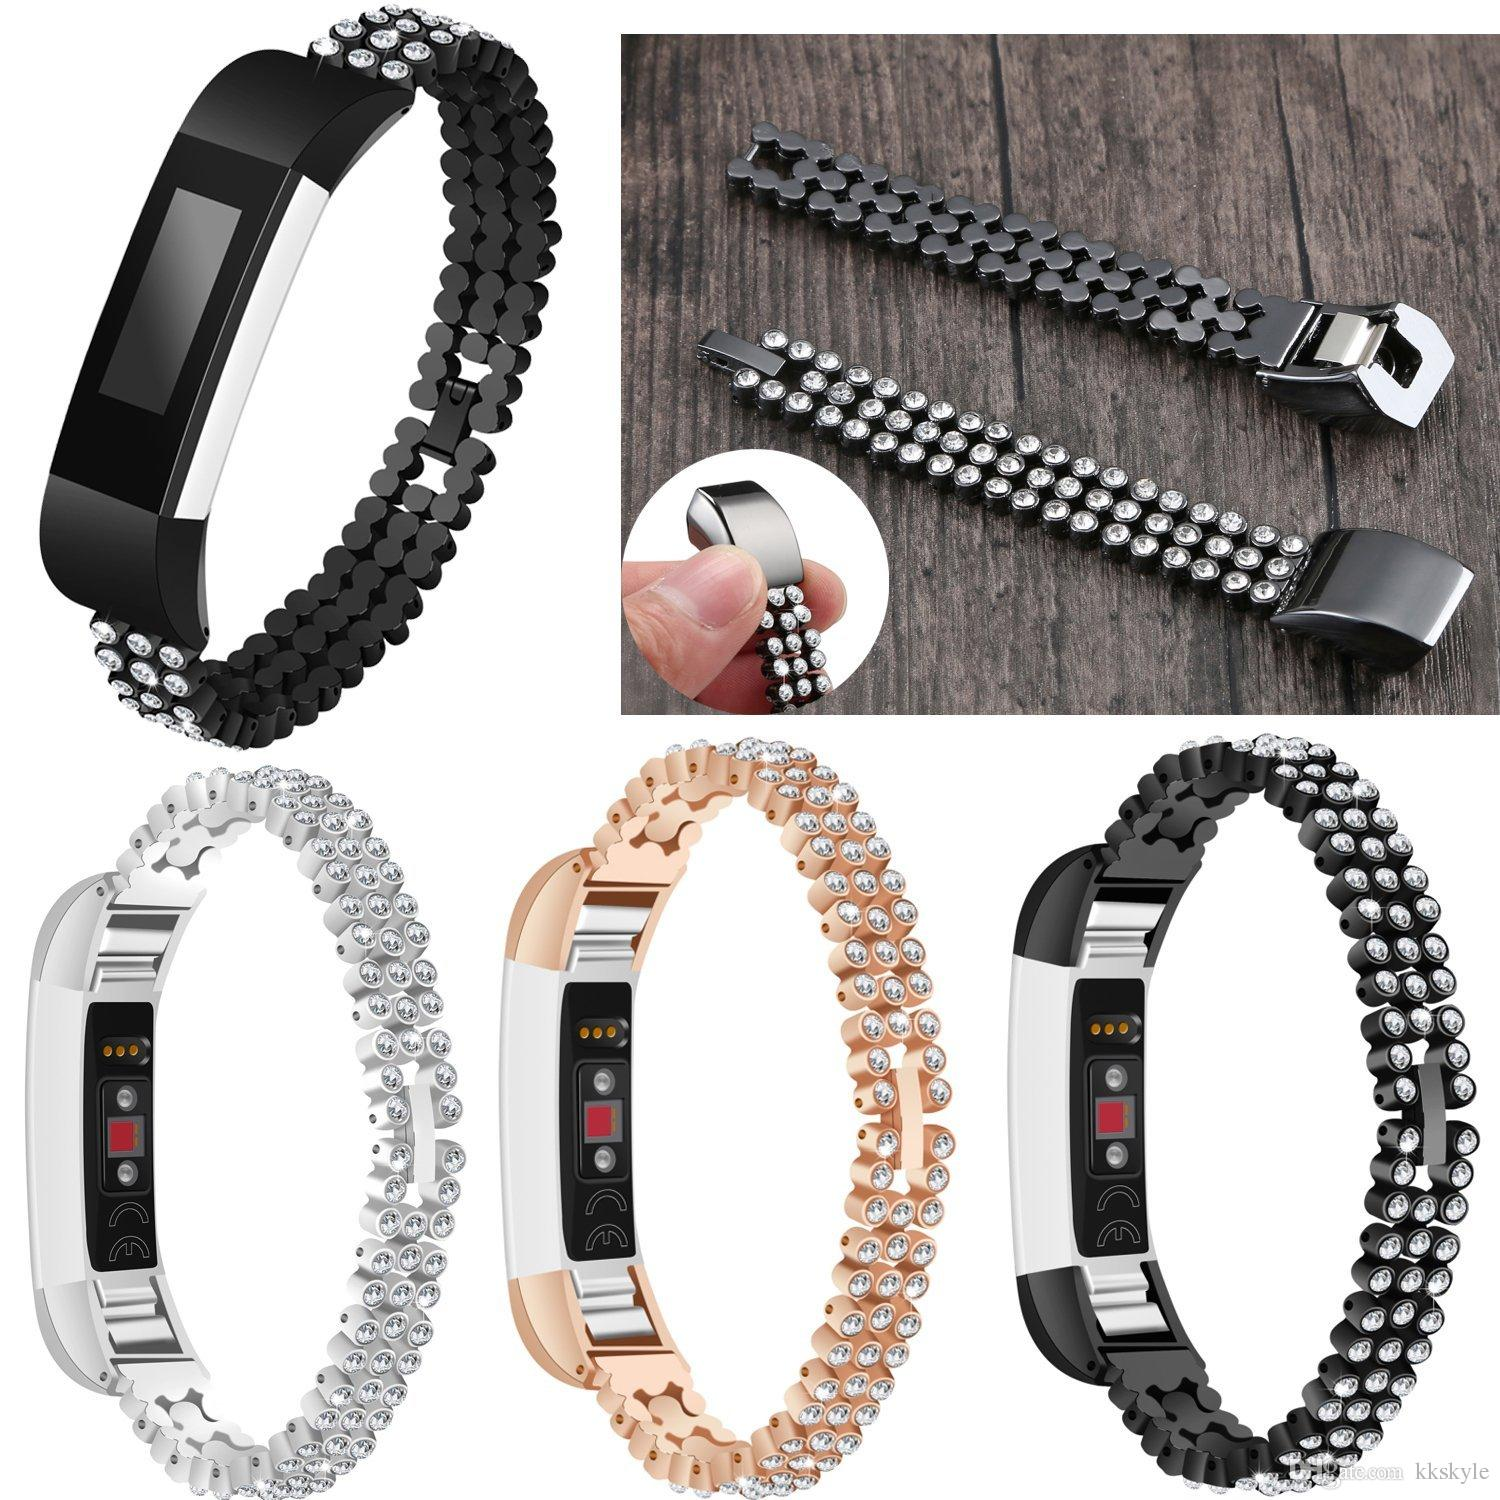 For Fitbit Alta Hr Bandsstainless Metal Bands With Bling Rhinestone Adjustable Jewelry Strap Diamonds Bracelet Accessory Band Comes Connector Which Make You Able To Change The Size Without Any Tool